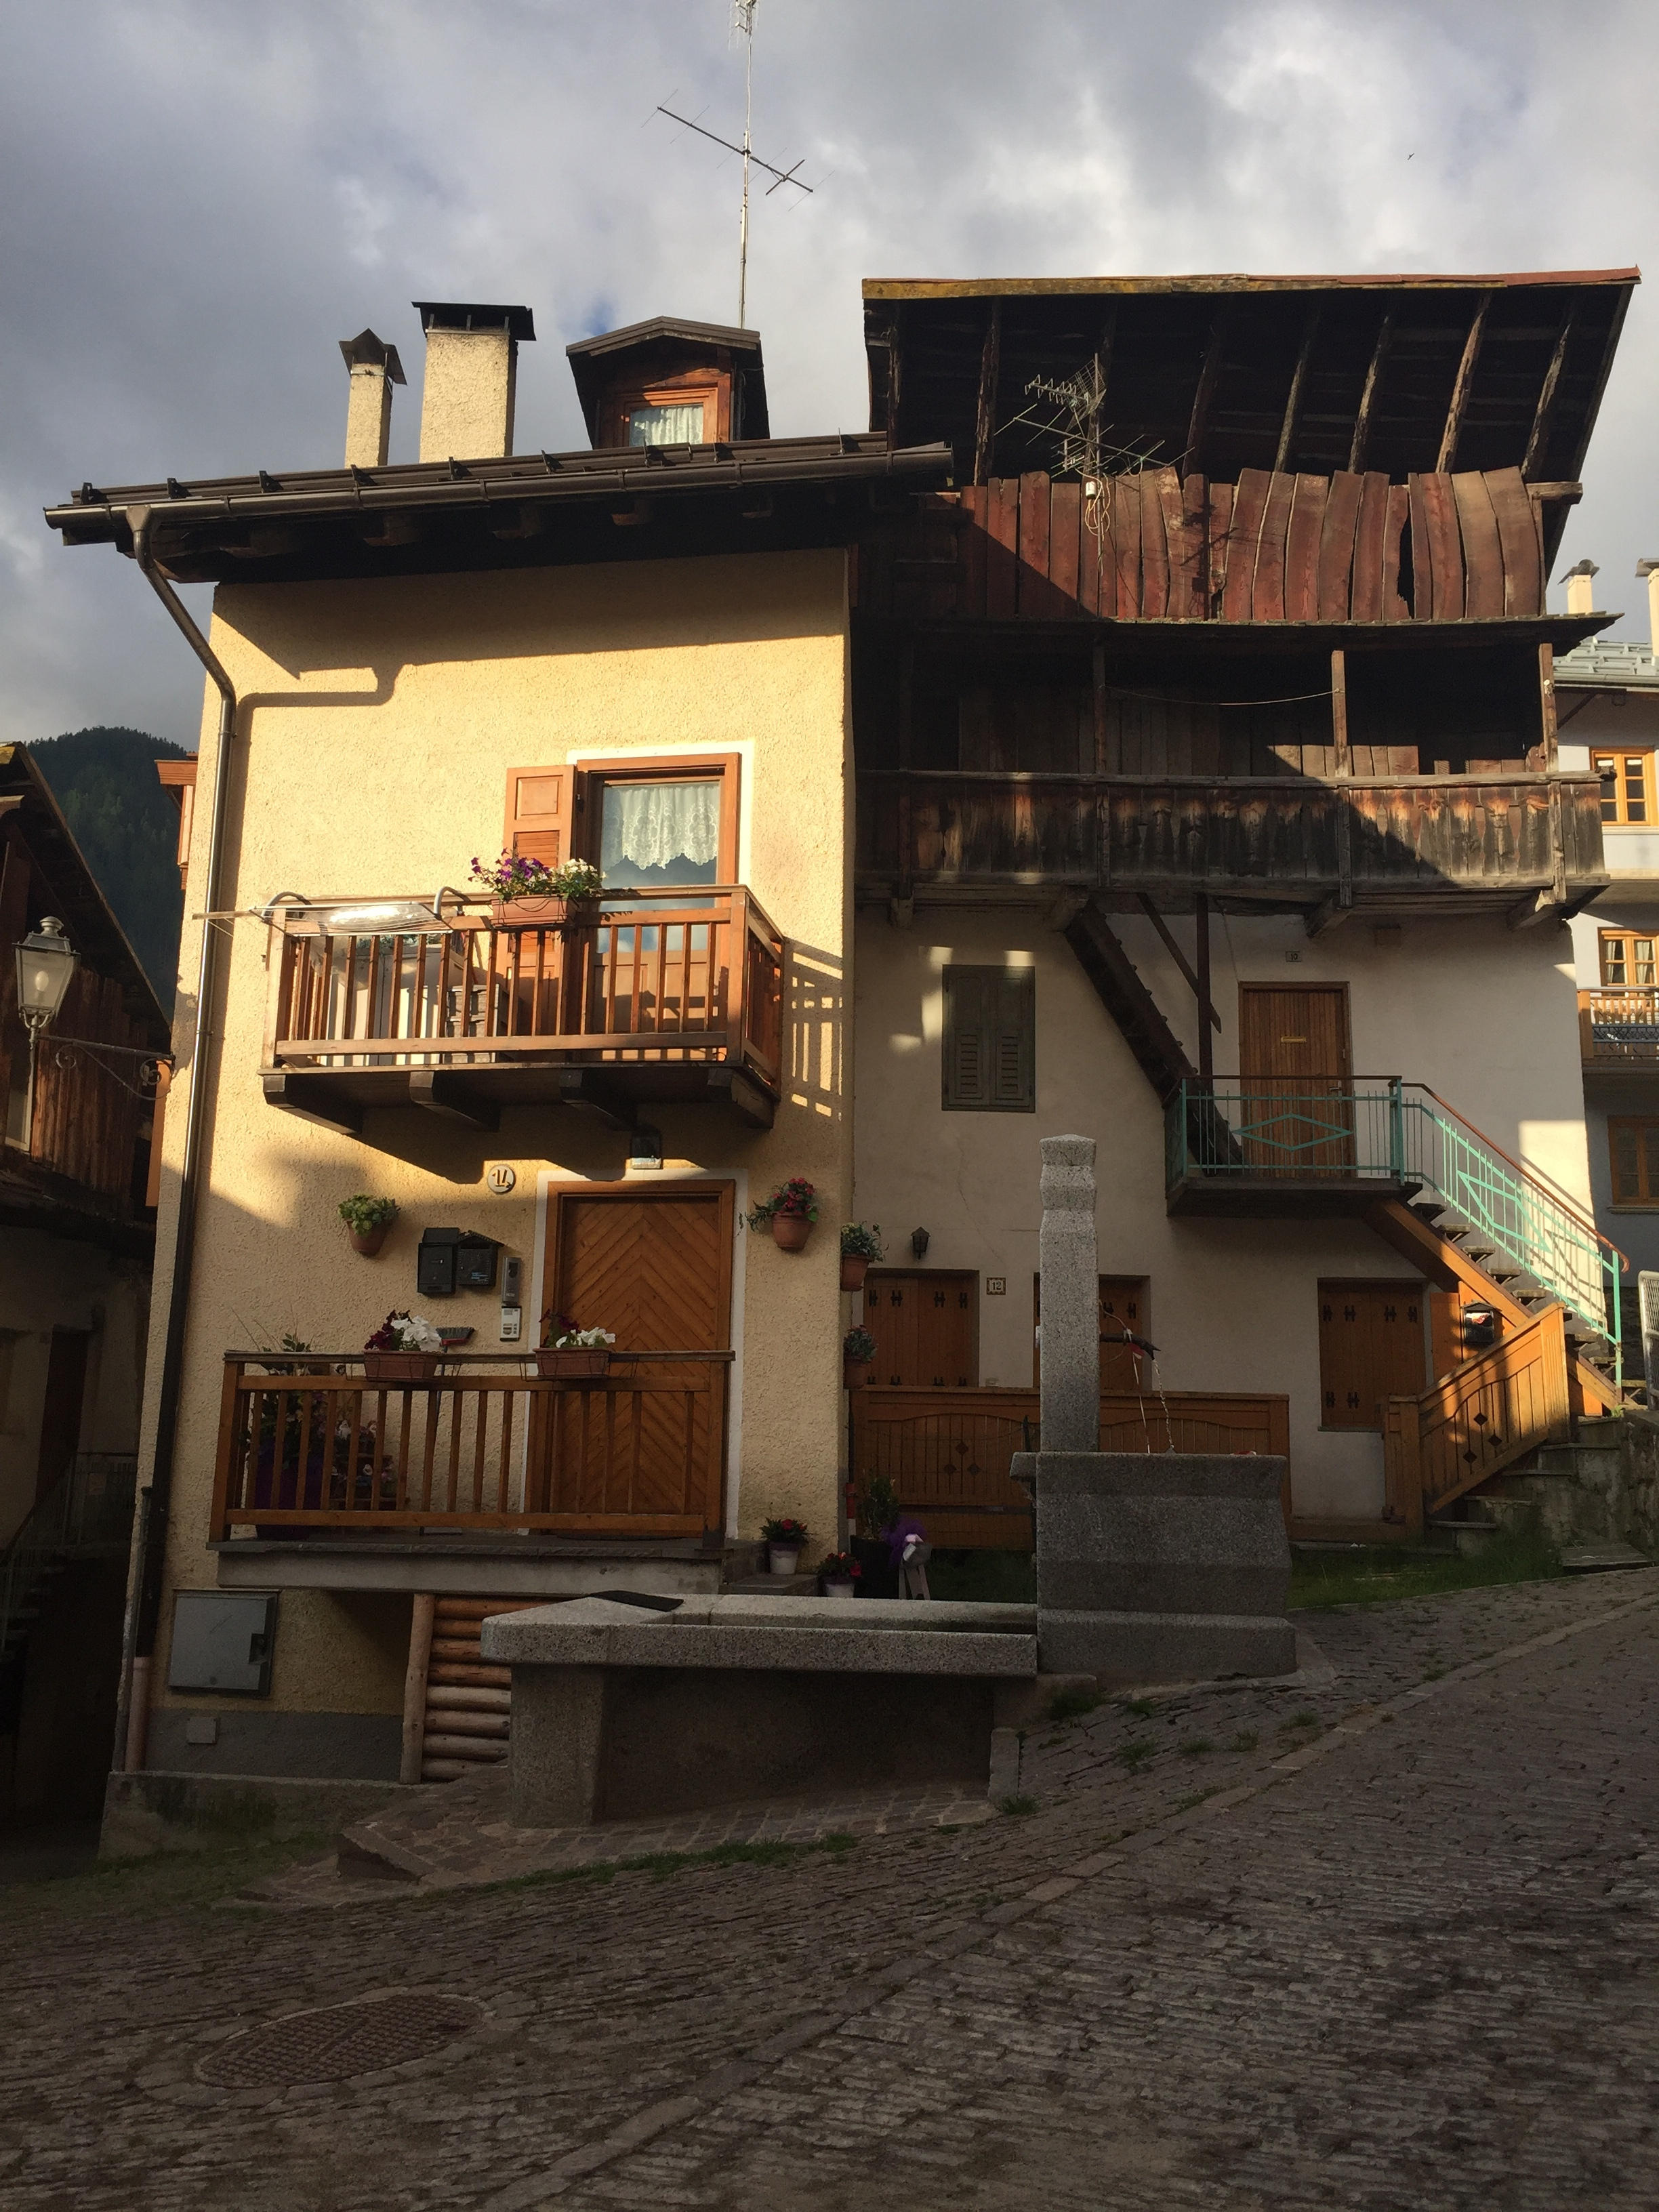 Downtown Vermiglio at sunrise